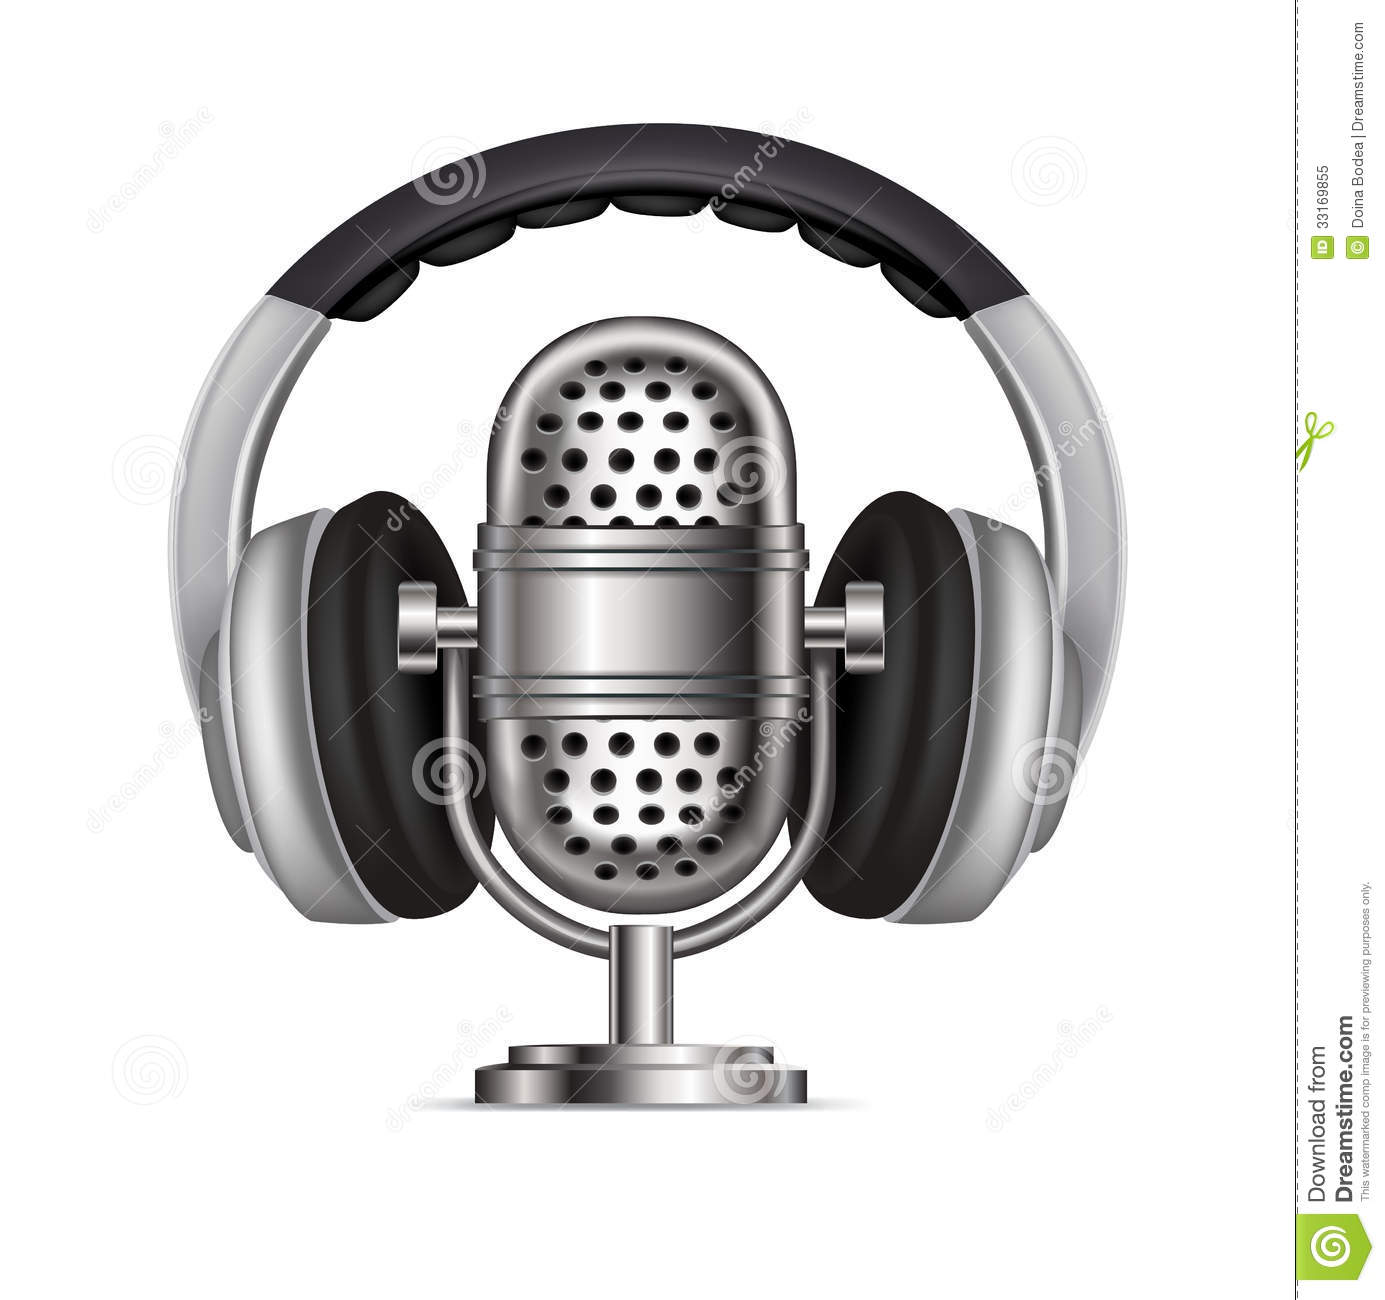 Headphone clipart animated Microphone Radio Headphone Download Clipart